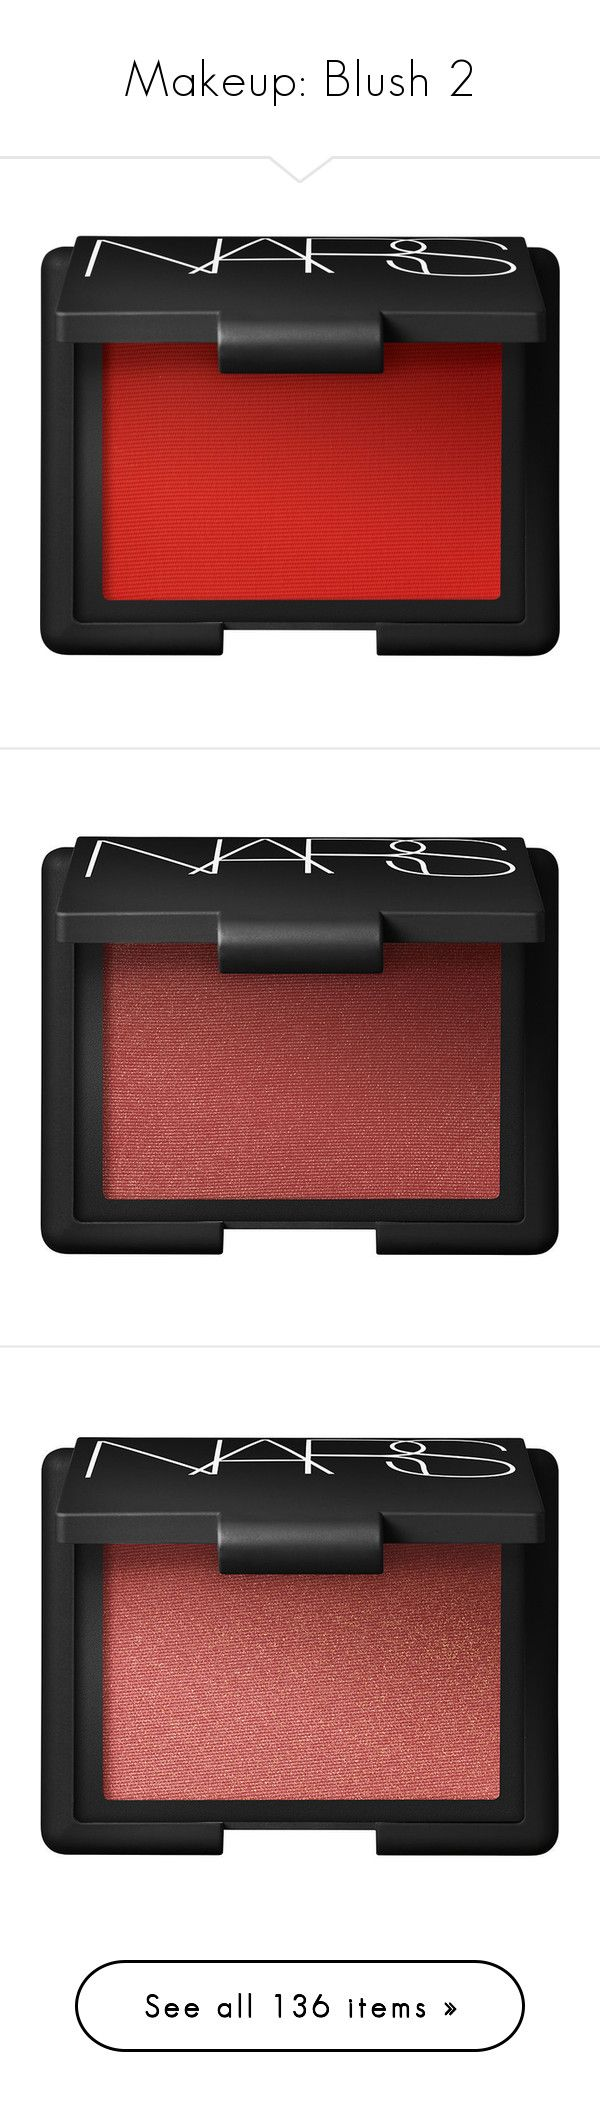 """""""Makeup: Blush 2"""" by katiasitems on Polyvore featuring beauty products, makeup, …"""